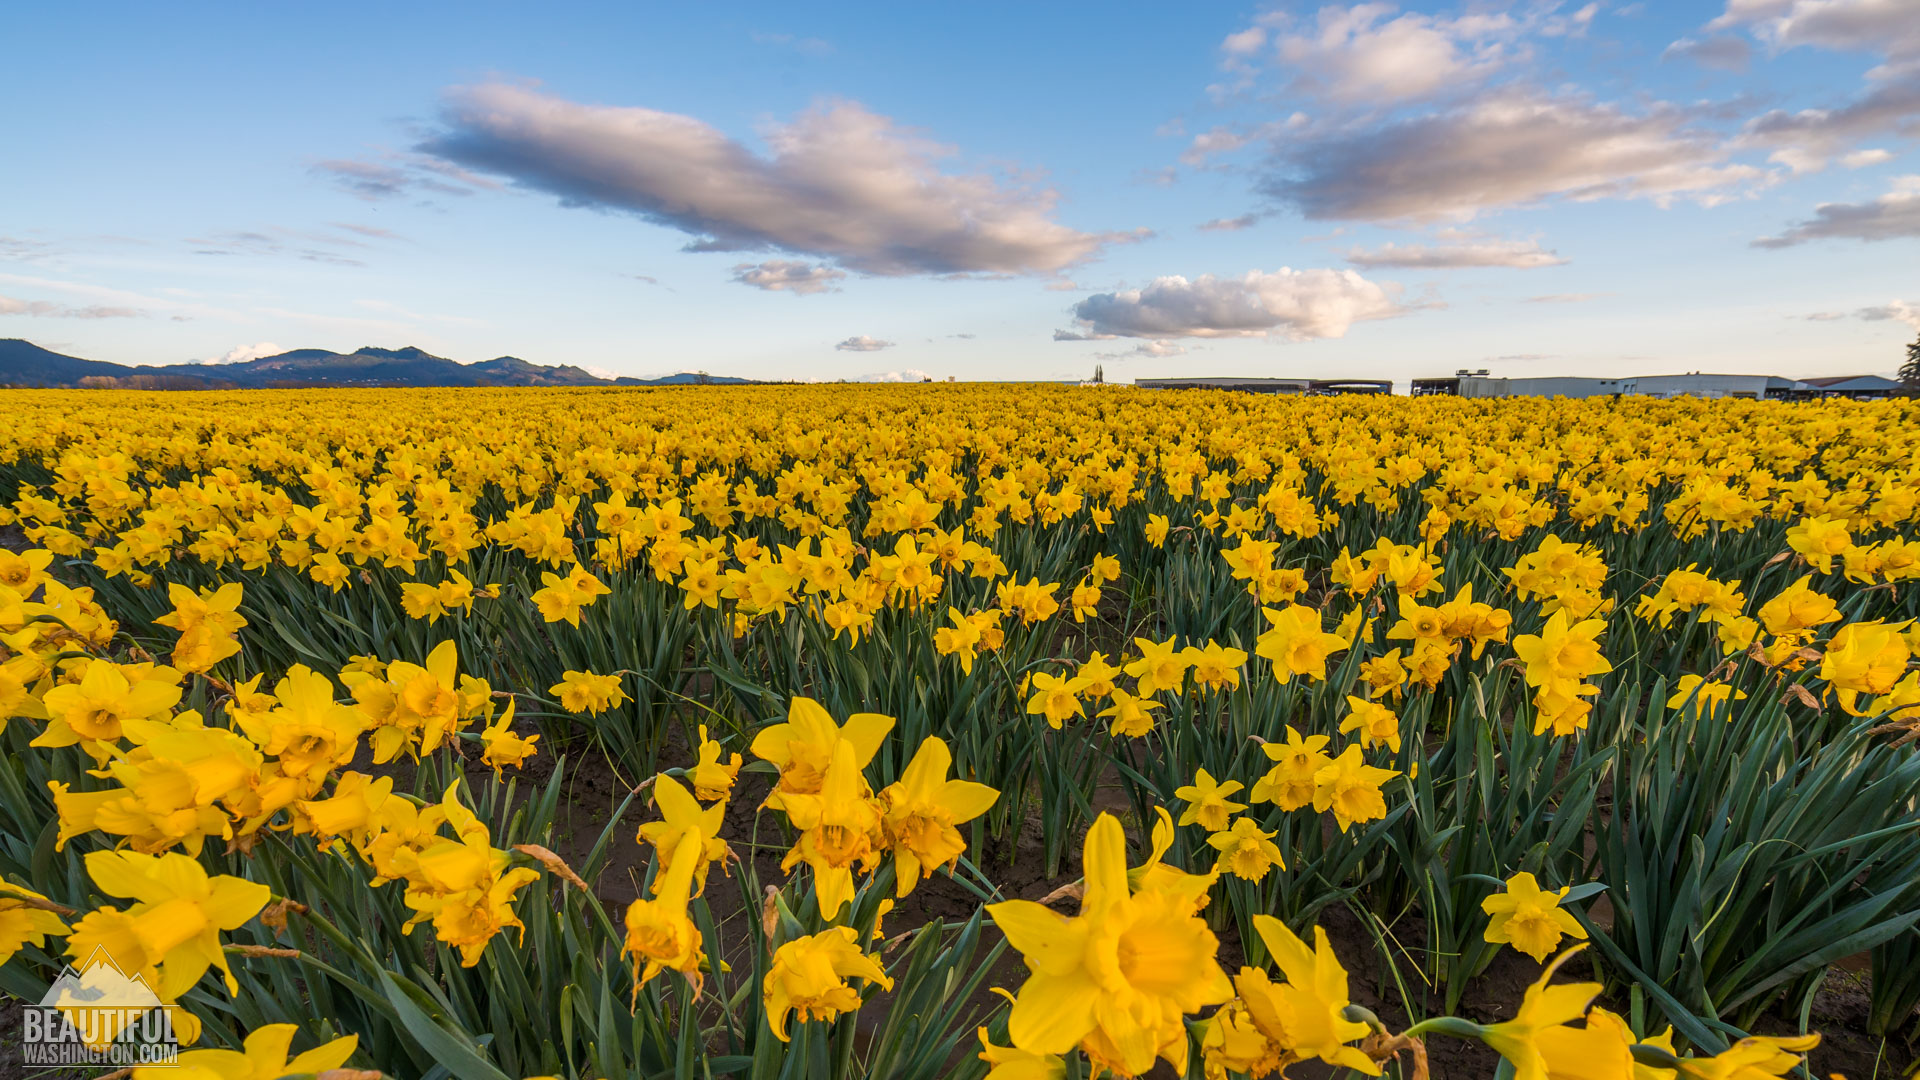 the daffodils and to daffodils 11 quotes have been tagged as daffodils: aa milne: 'she turned to the sunlight  and shook her yellow head,and whispered to her neighbor: winte.